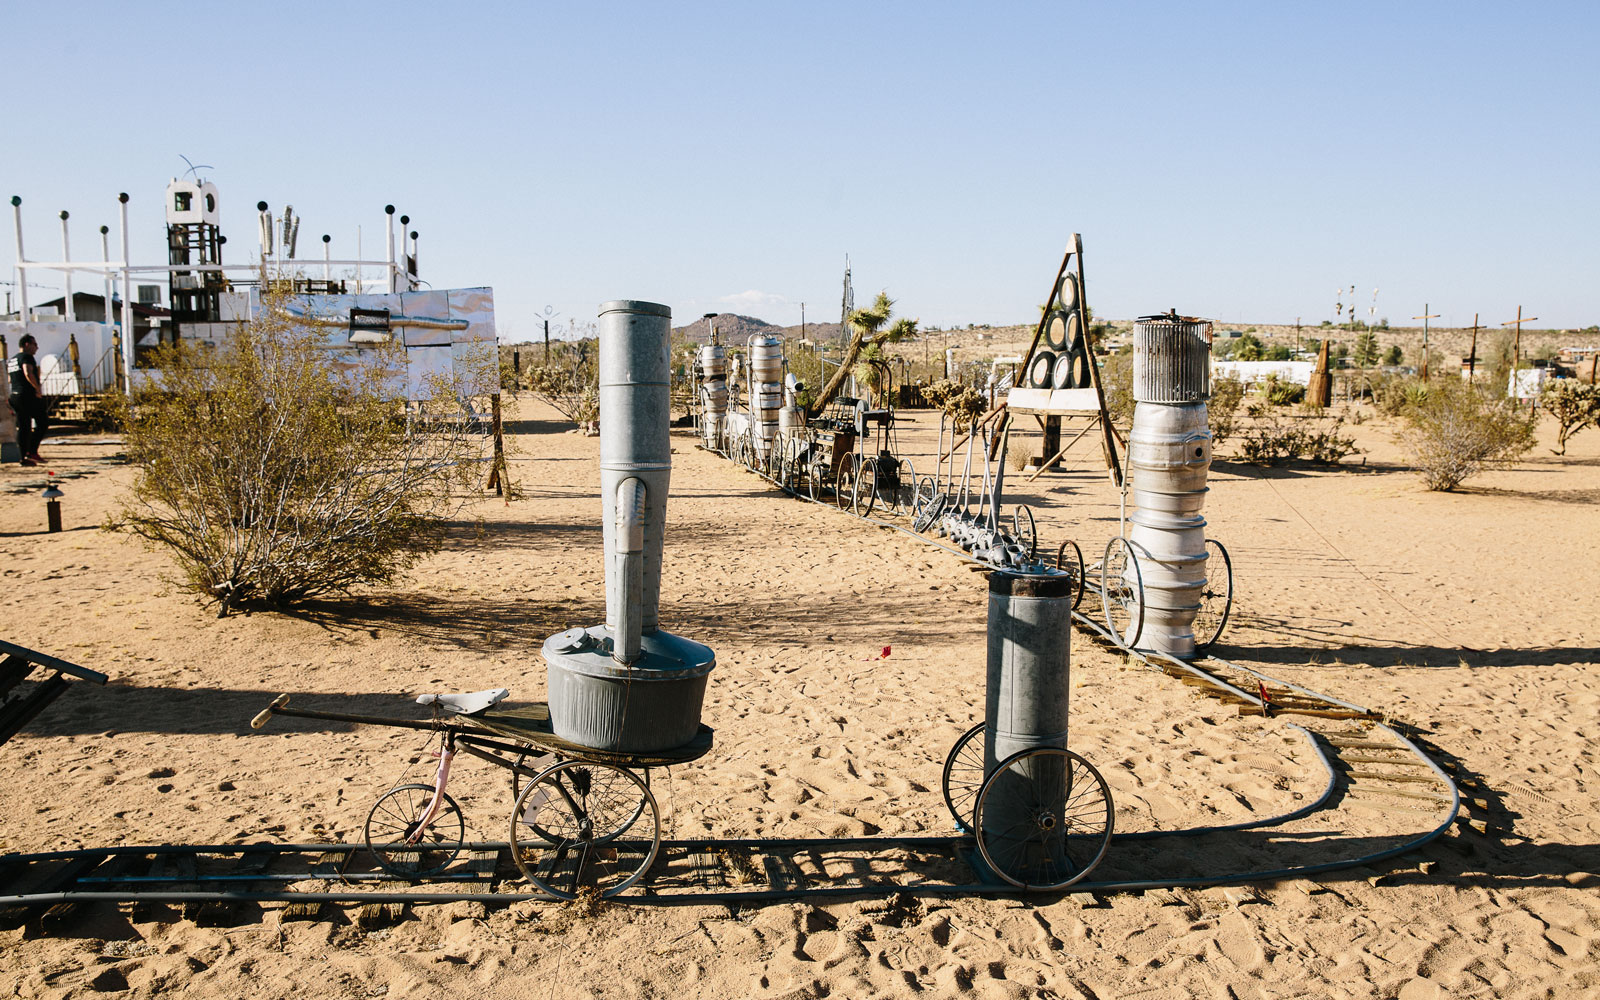 sculptures by Noah Purifoy